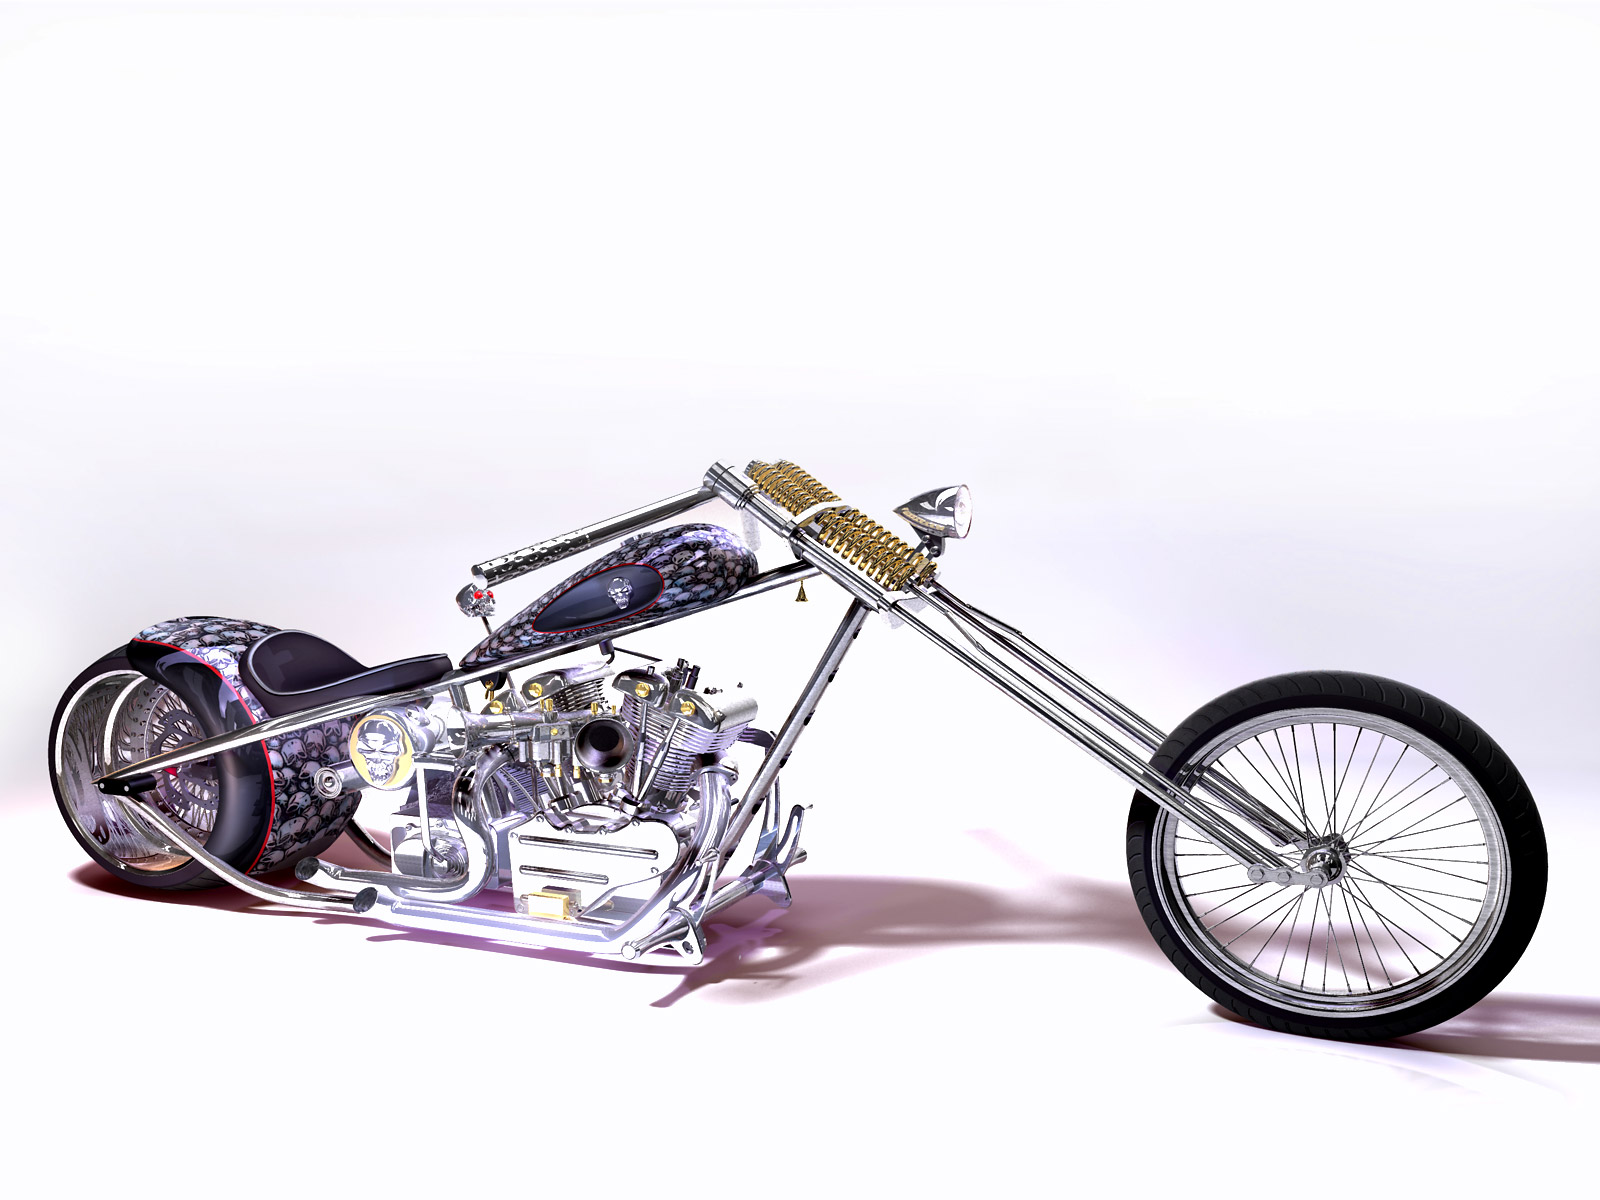 free games wallpapers: free 3d bike-motor bike wallpapers - download